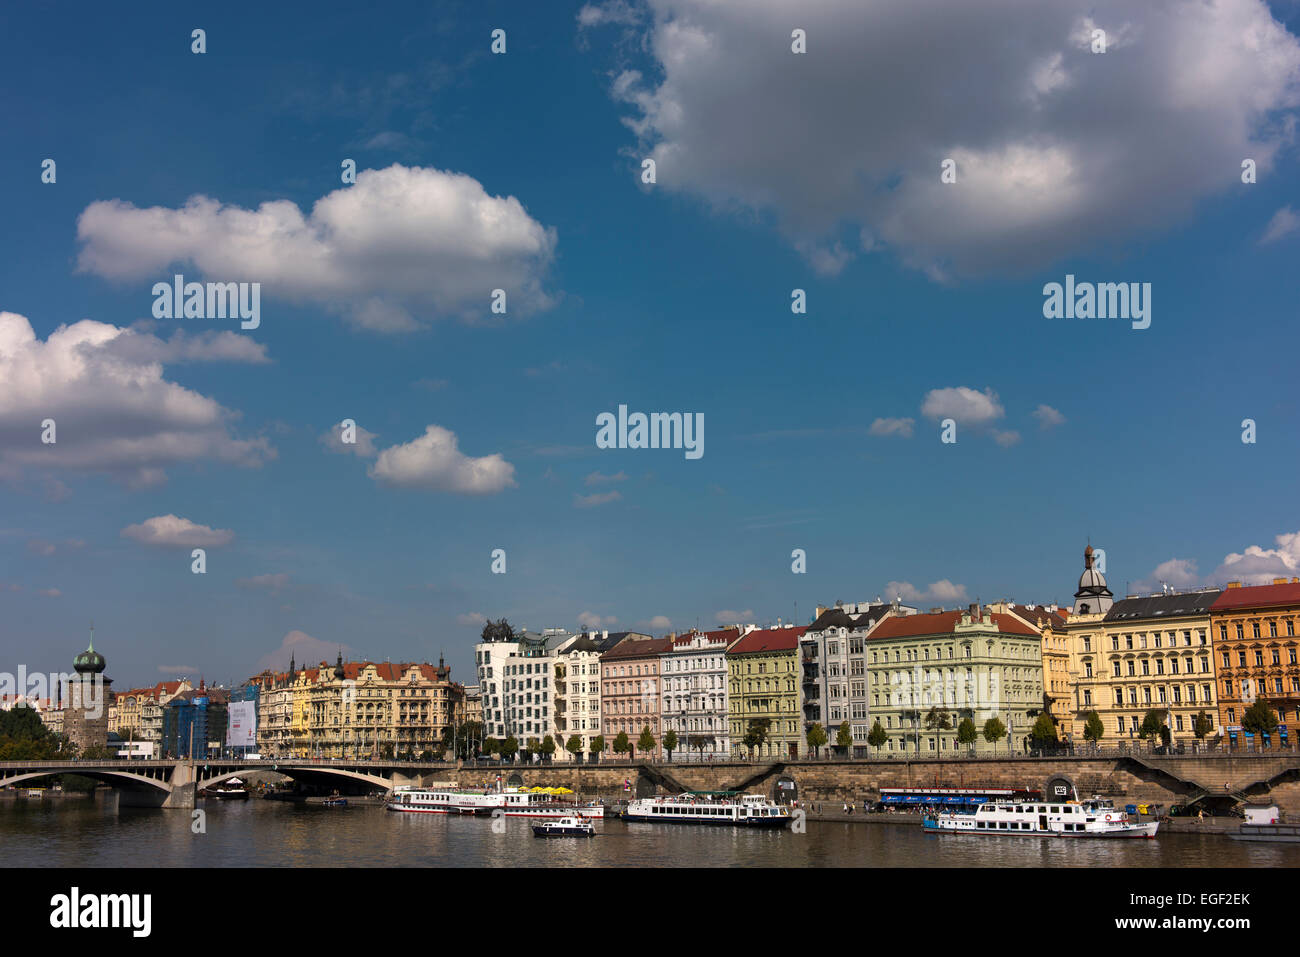 Jiraskuv Bridge and historic buildings fronting the Vltava River. - Stock Image